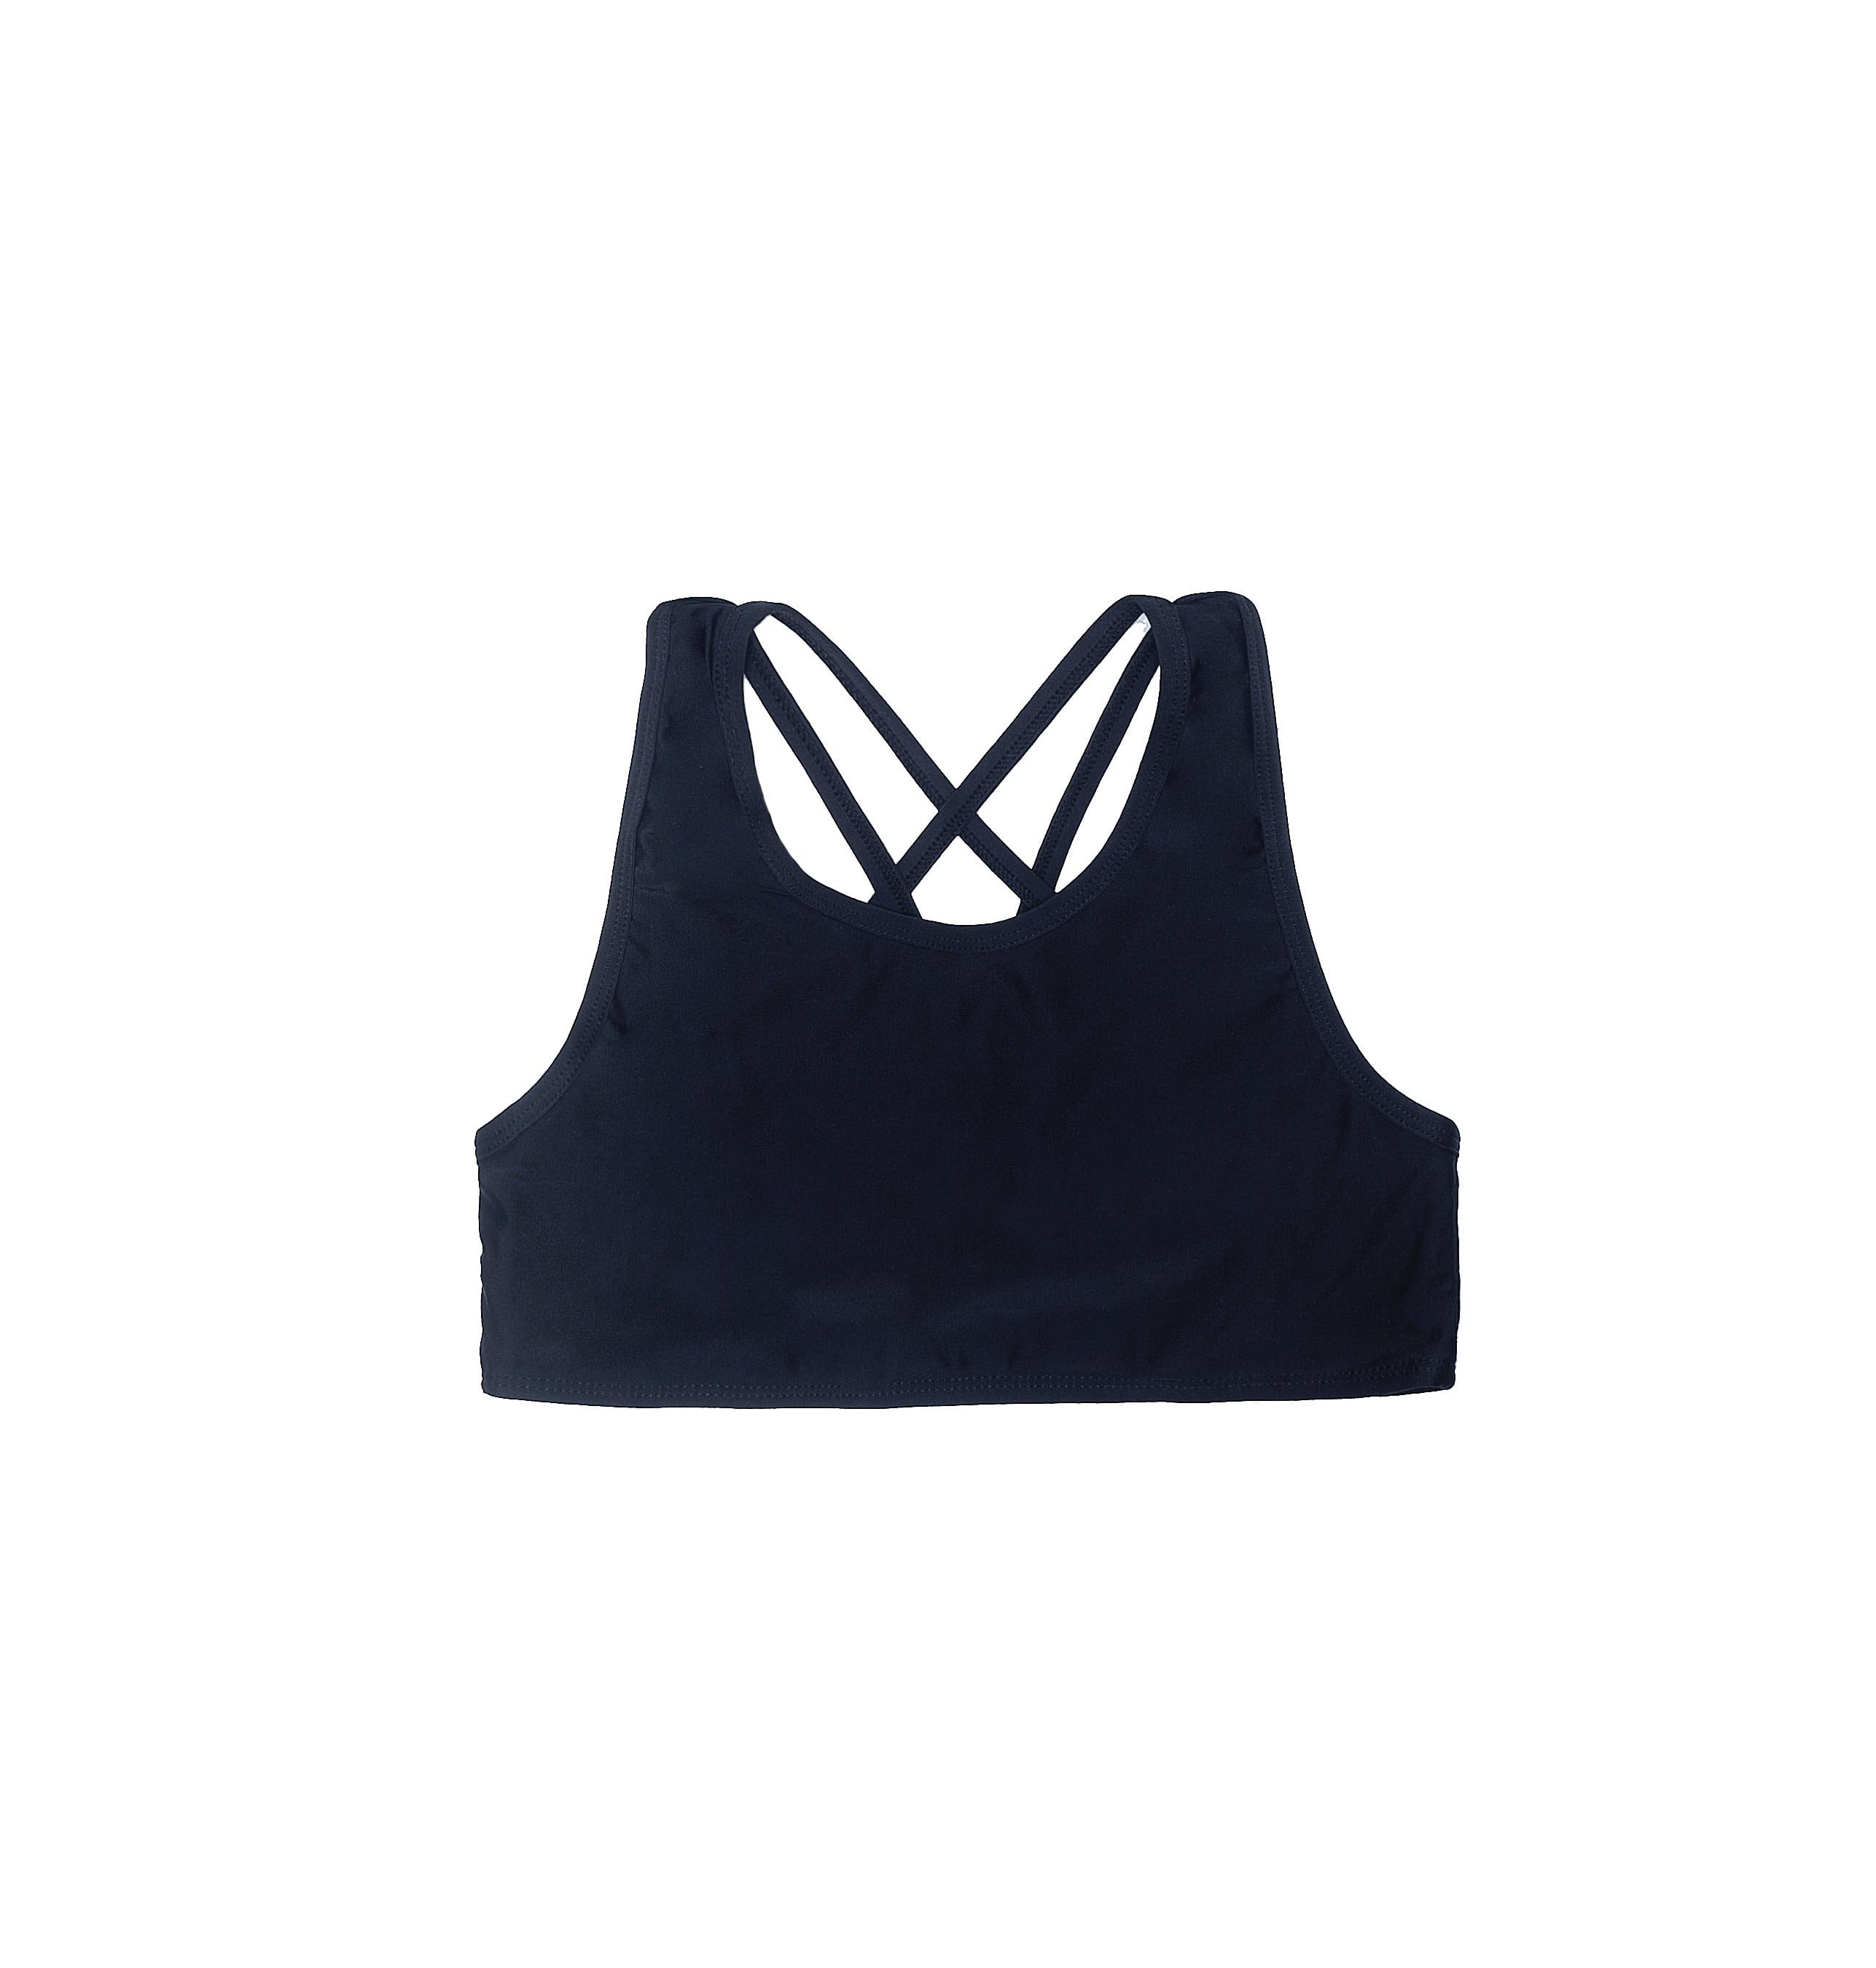 Girls Activewear Double Strap Crop Top Black